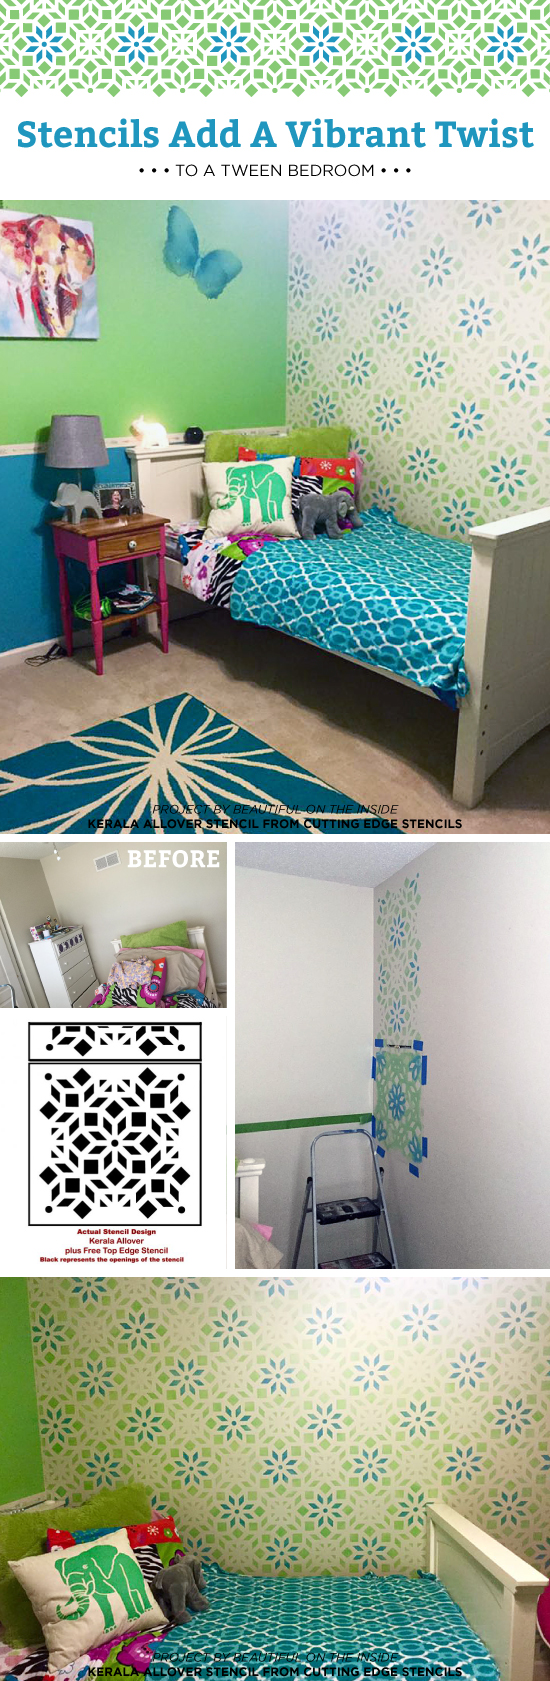 Cutting Edge Stencils shares a DIY stenciled tween bedroom makeover using the Kerala Allover Stencil. http://www.cuttingedgestencils.com/kerala-indian-stencil-geometric-pattern-stencils.html